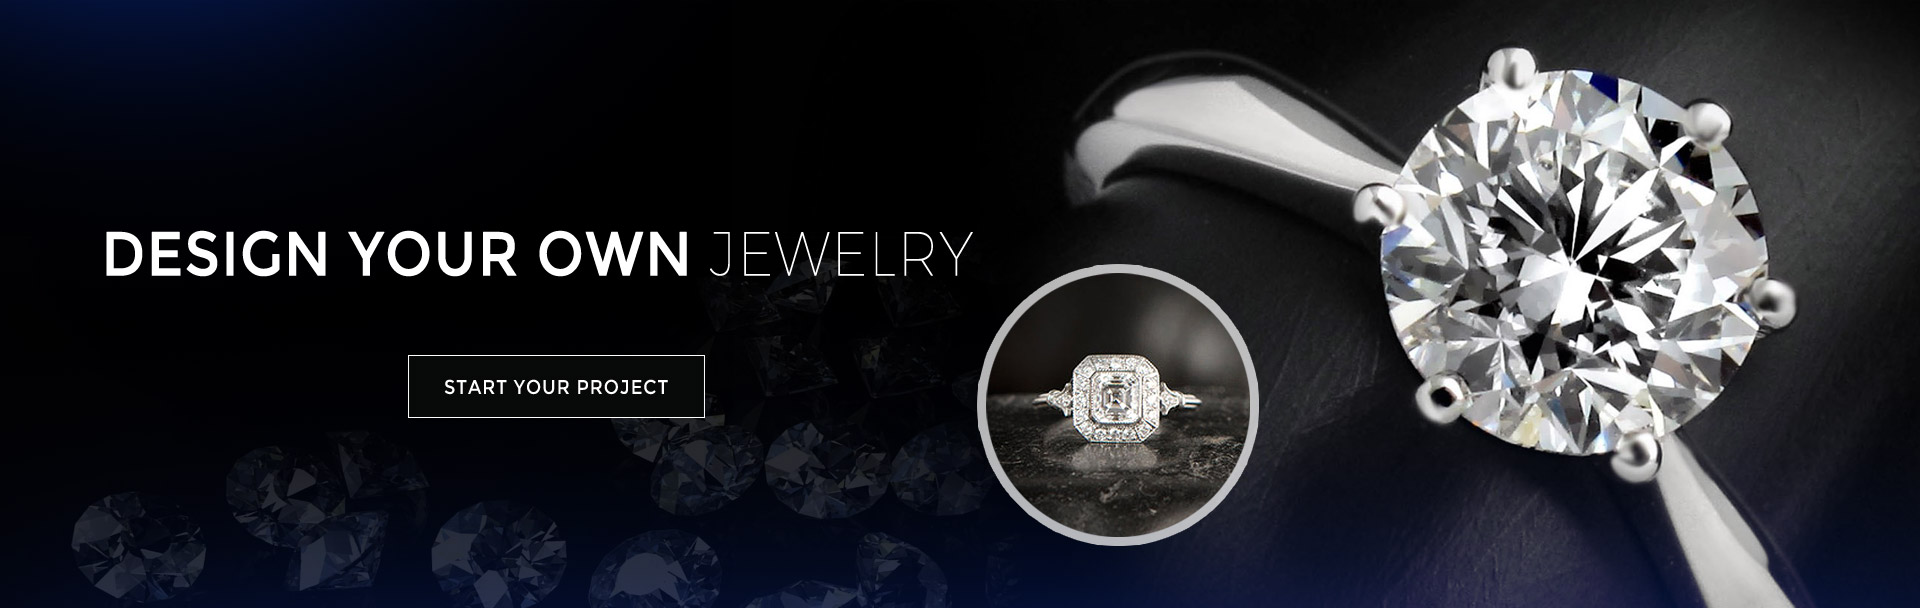 Design your own jewelry